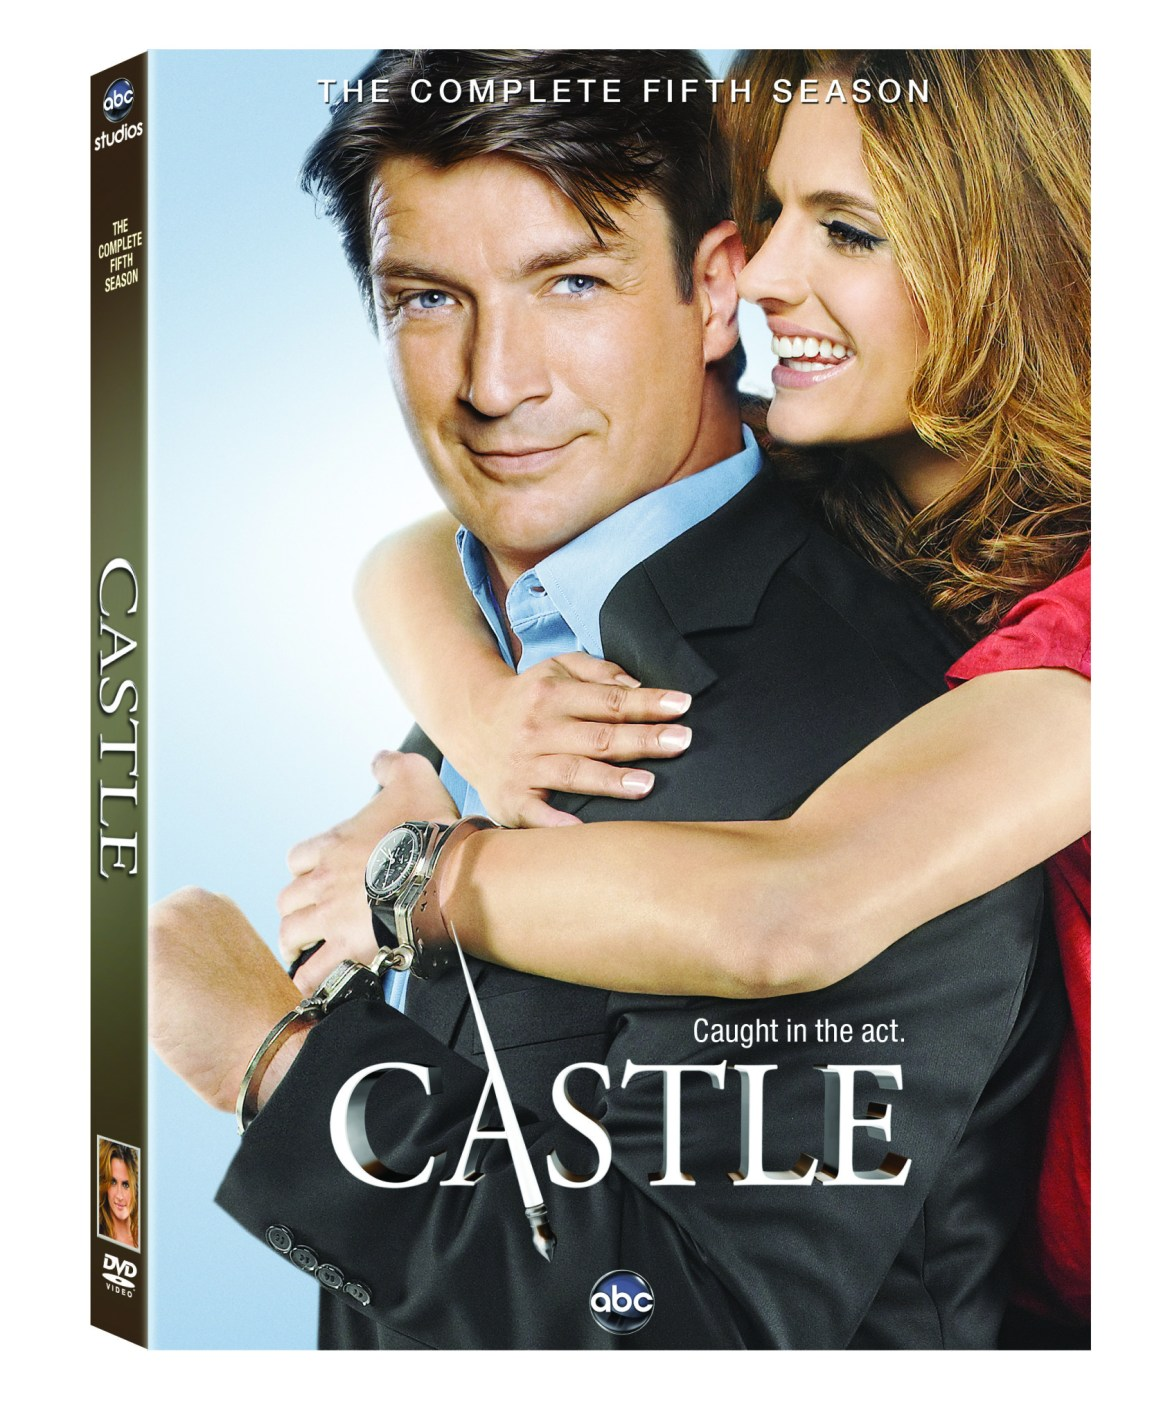 'Castle: The Complete Fifth Season' Comes to DVD September 10, 2013